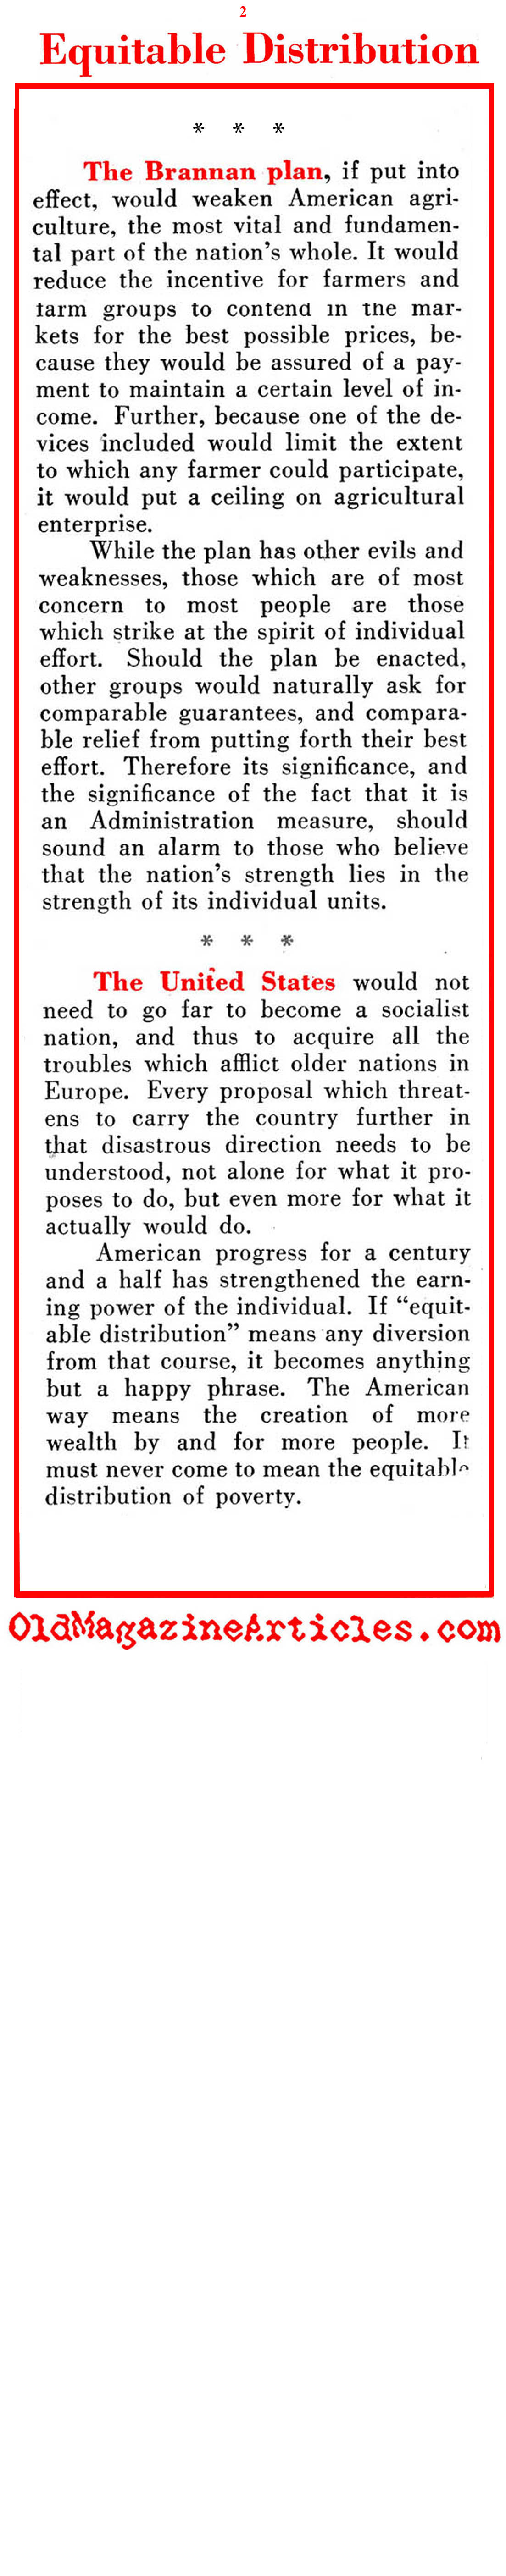 When President Truman Tried his Hand at ''Distributing Wealth'' (Pathfinder Magazine, 1949)